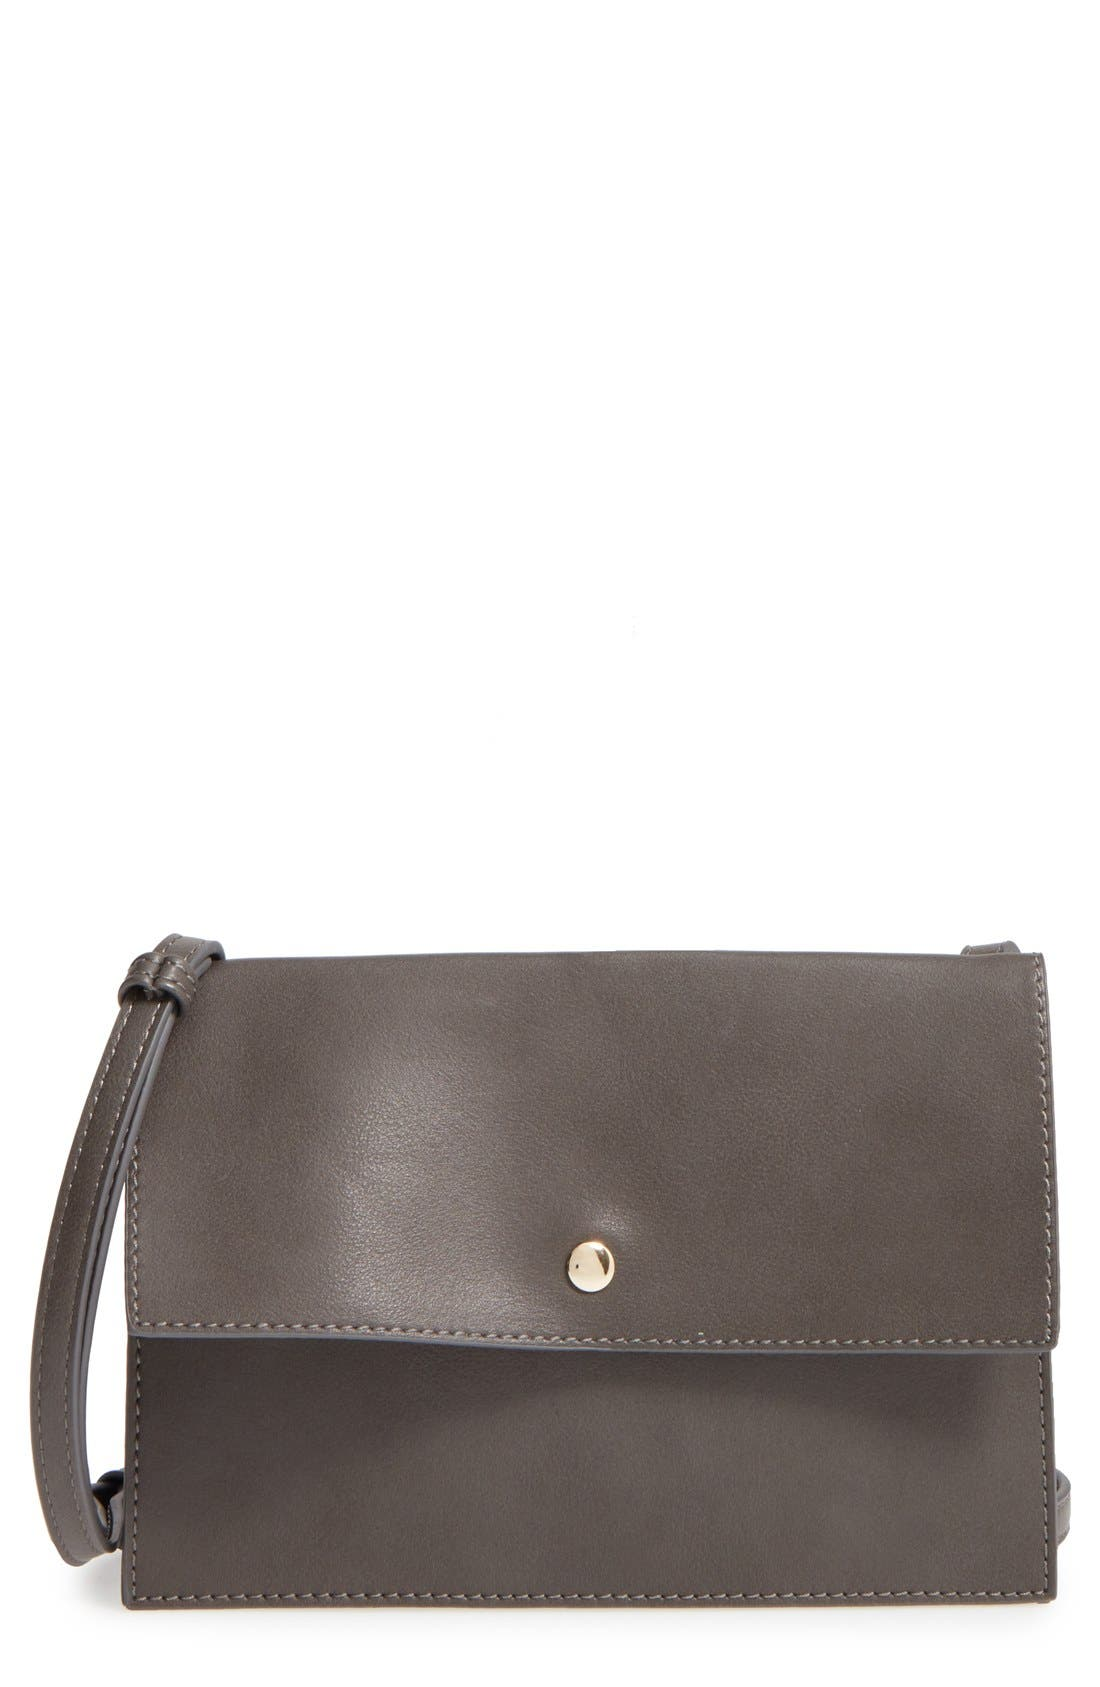 'Vanessa' Faux Leather Crossbody Bag,                         Main,                         color, 020